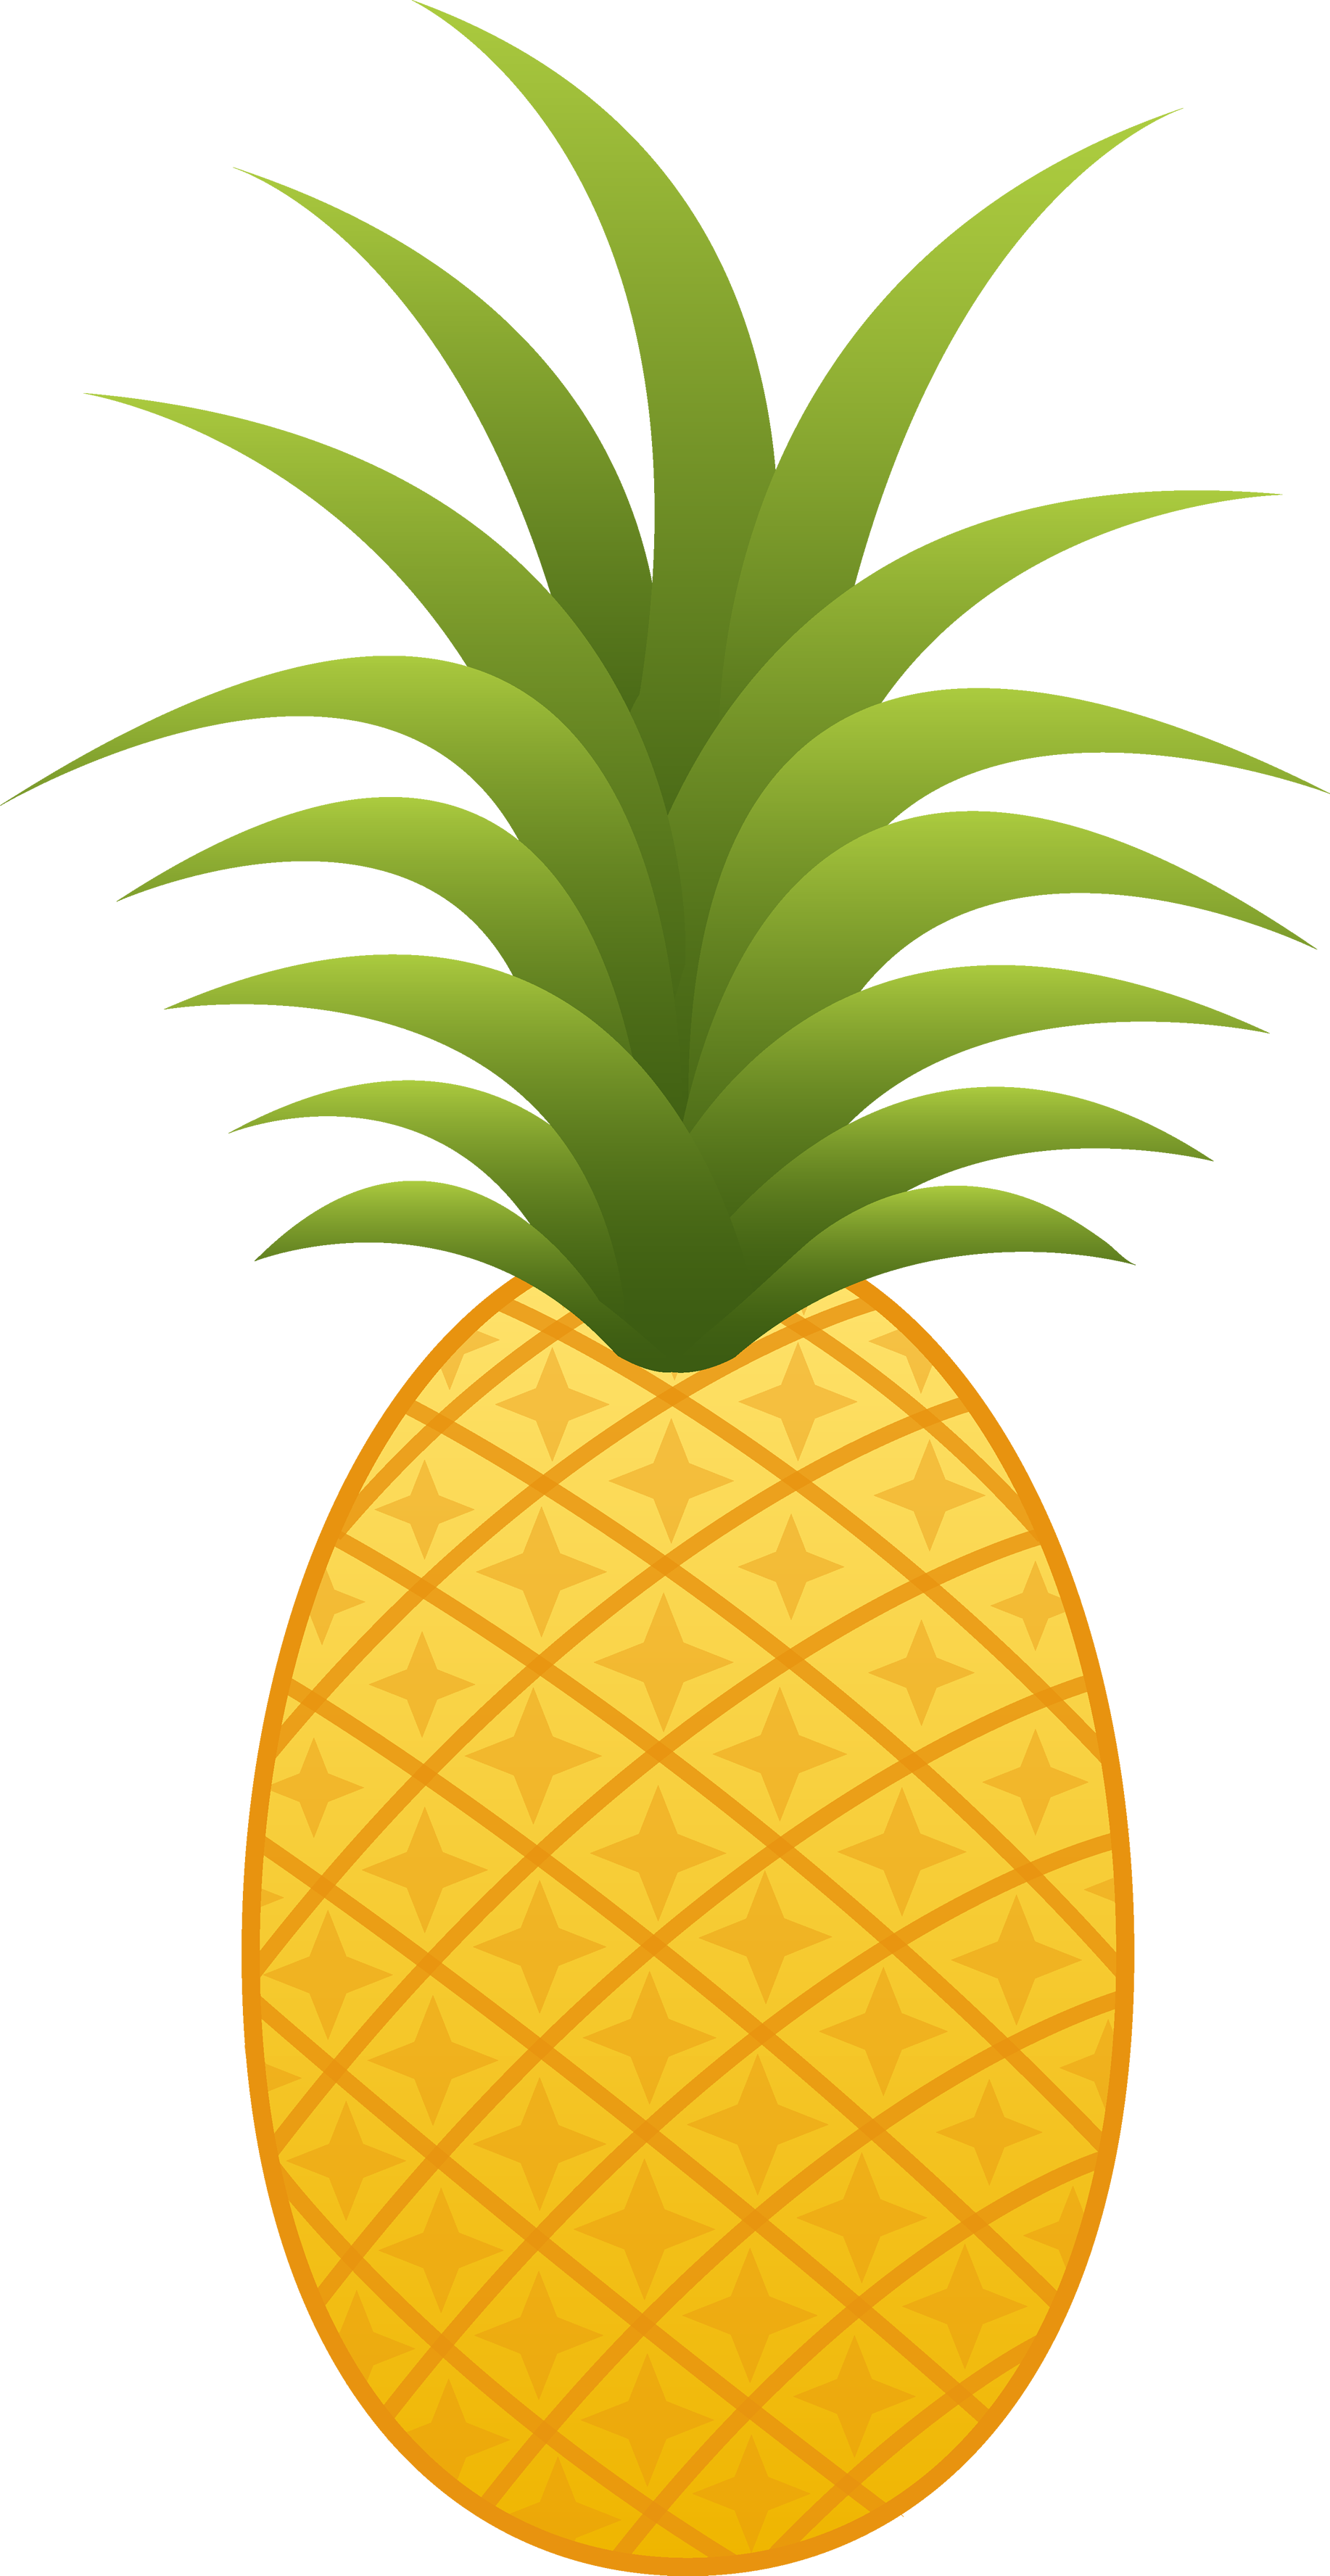 Pineapple images free pictures download 3 Pineapple